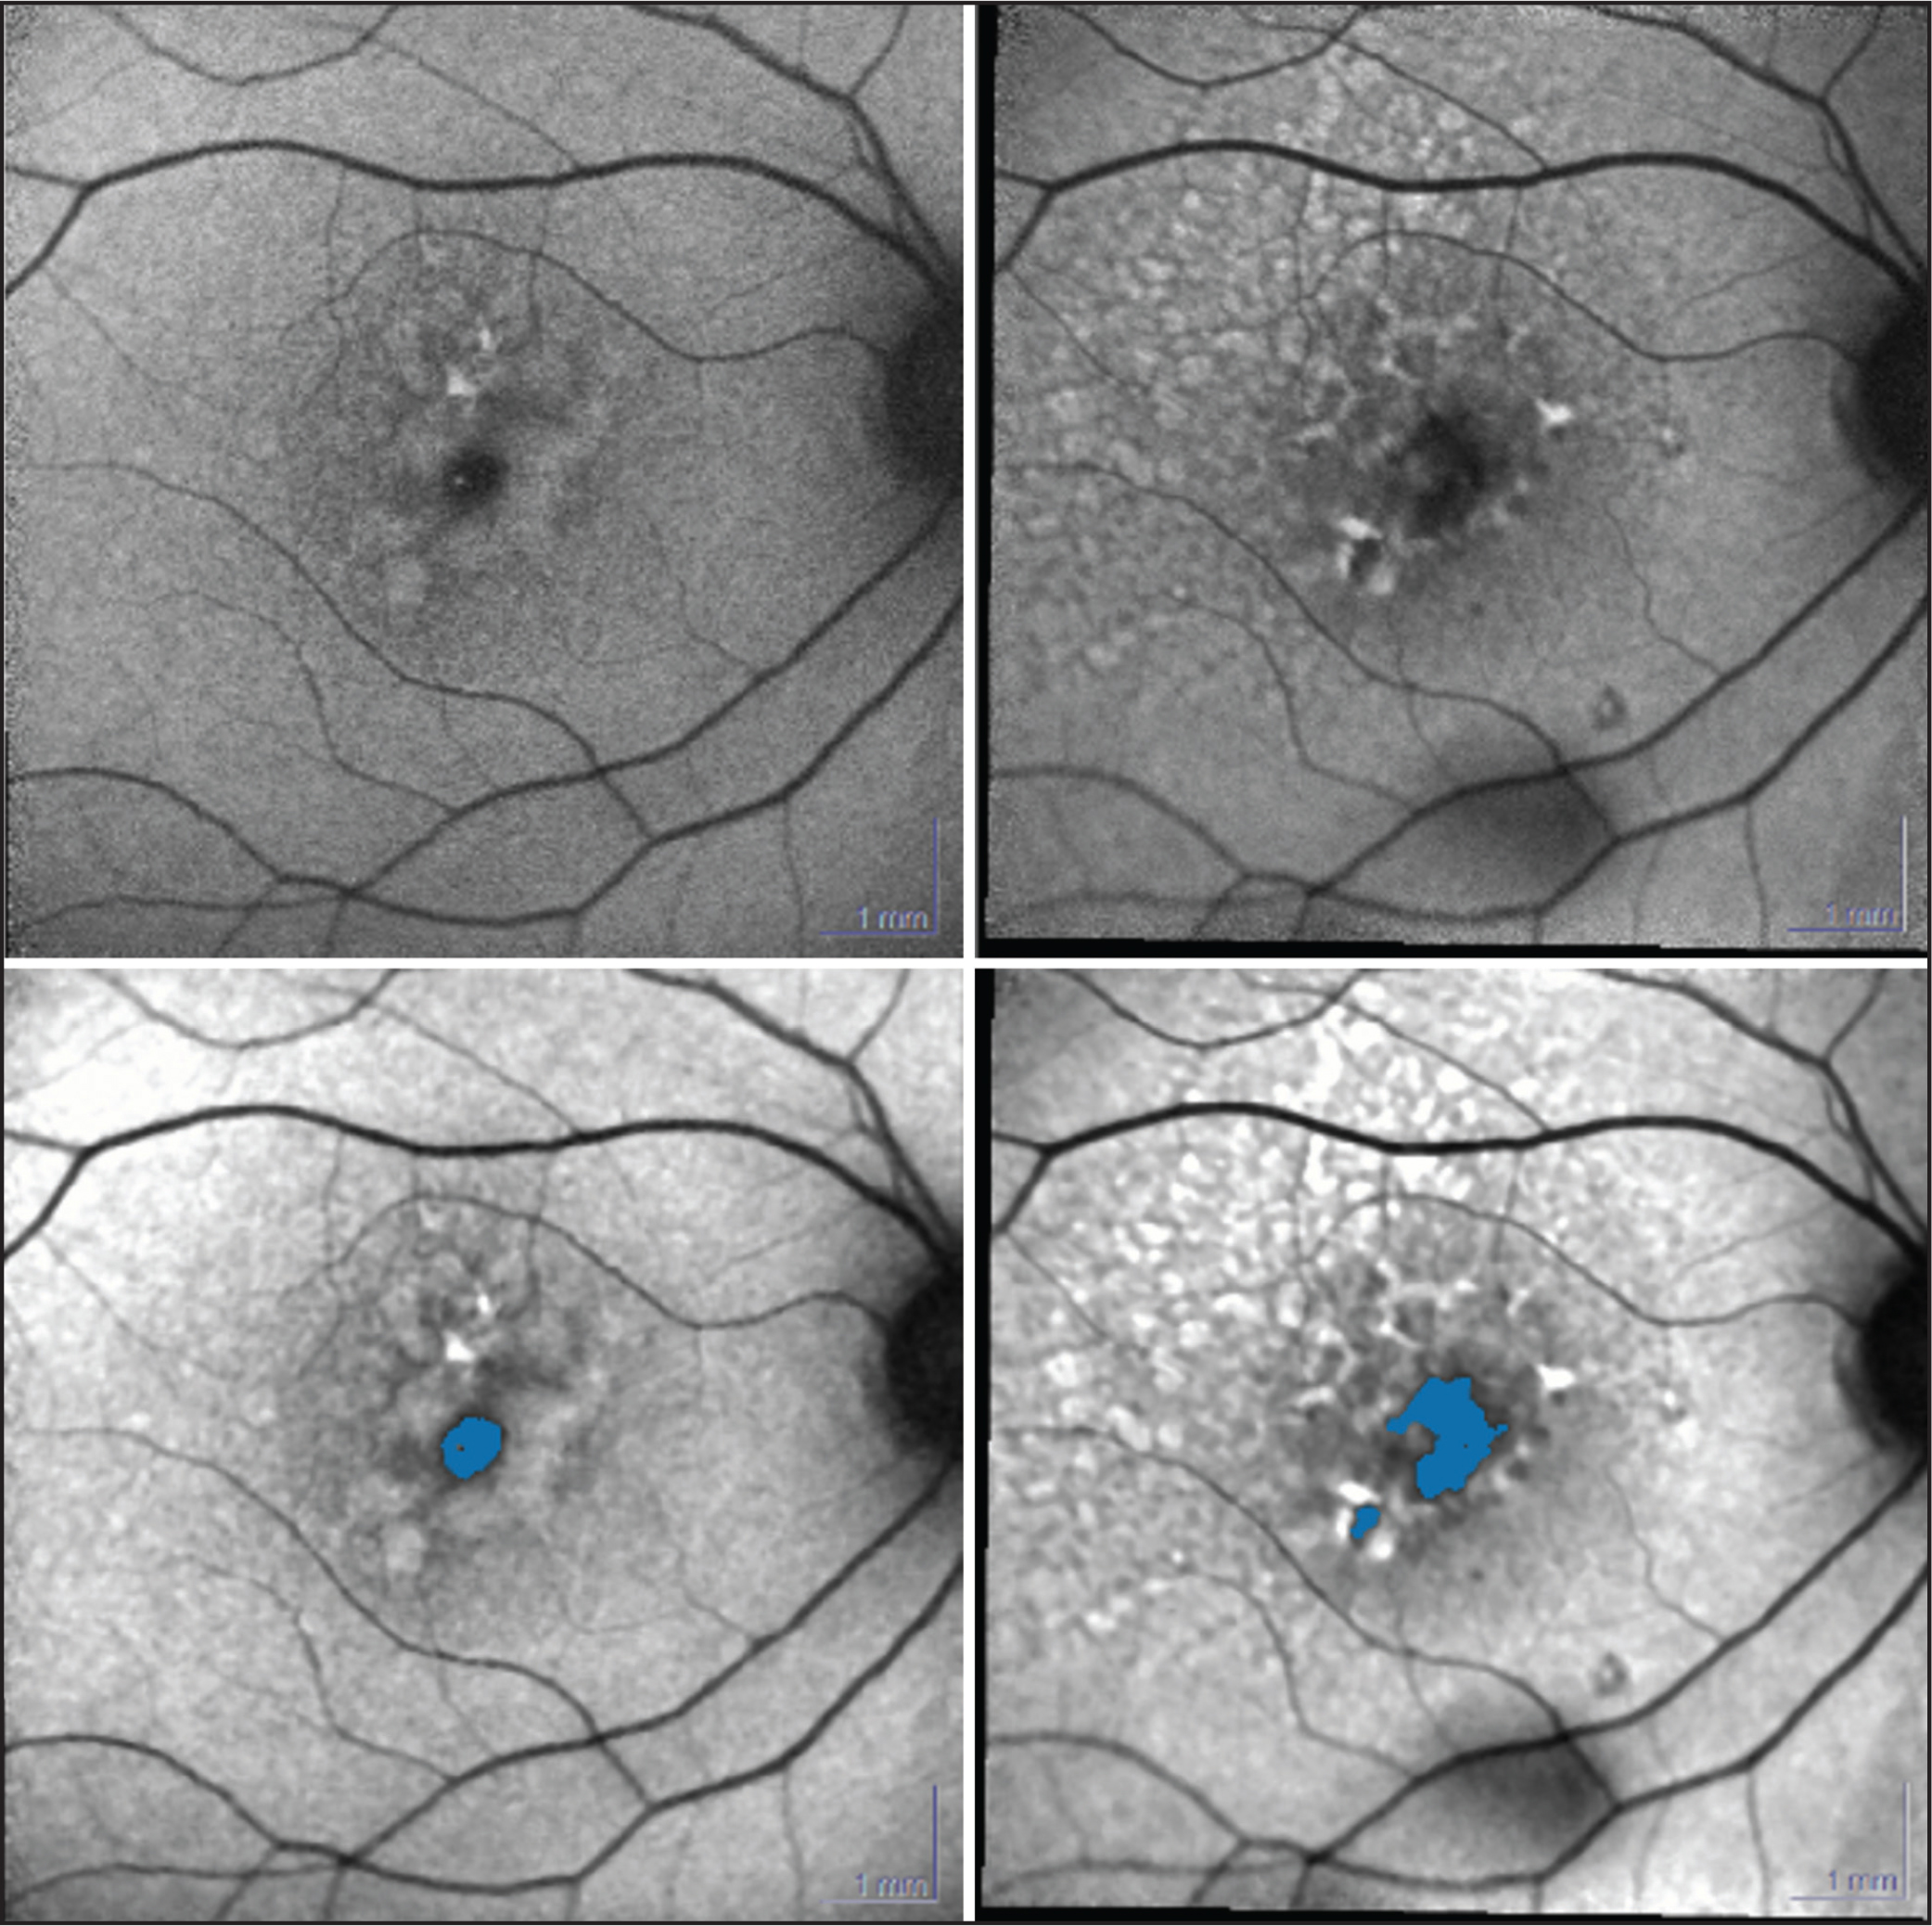 Progression of retinal pigment epithelium (RPE) atrophy in a 76-year-old woman with pattern dystrophy, using RegionFinder software. Top left: initial blue laser autofluorescence image. Top right: final autofluorescence image. Bottom left: RegionFinder software analysis corresponding to the image at the top and left. Bottom right: RegionFinder software analysis corresponding to the image at the top and right.